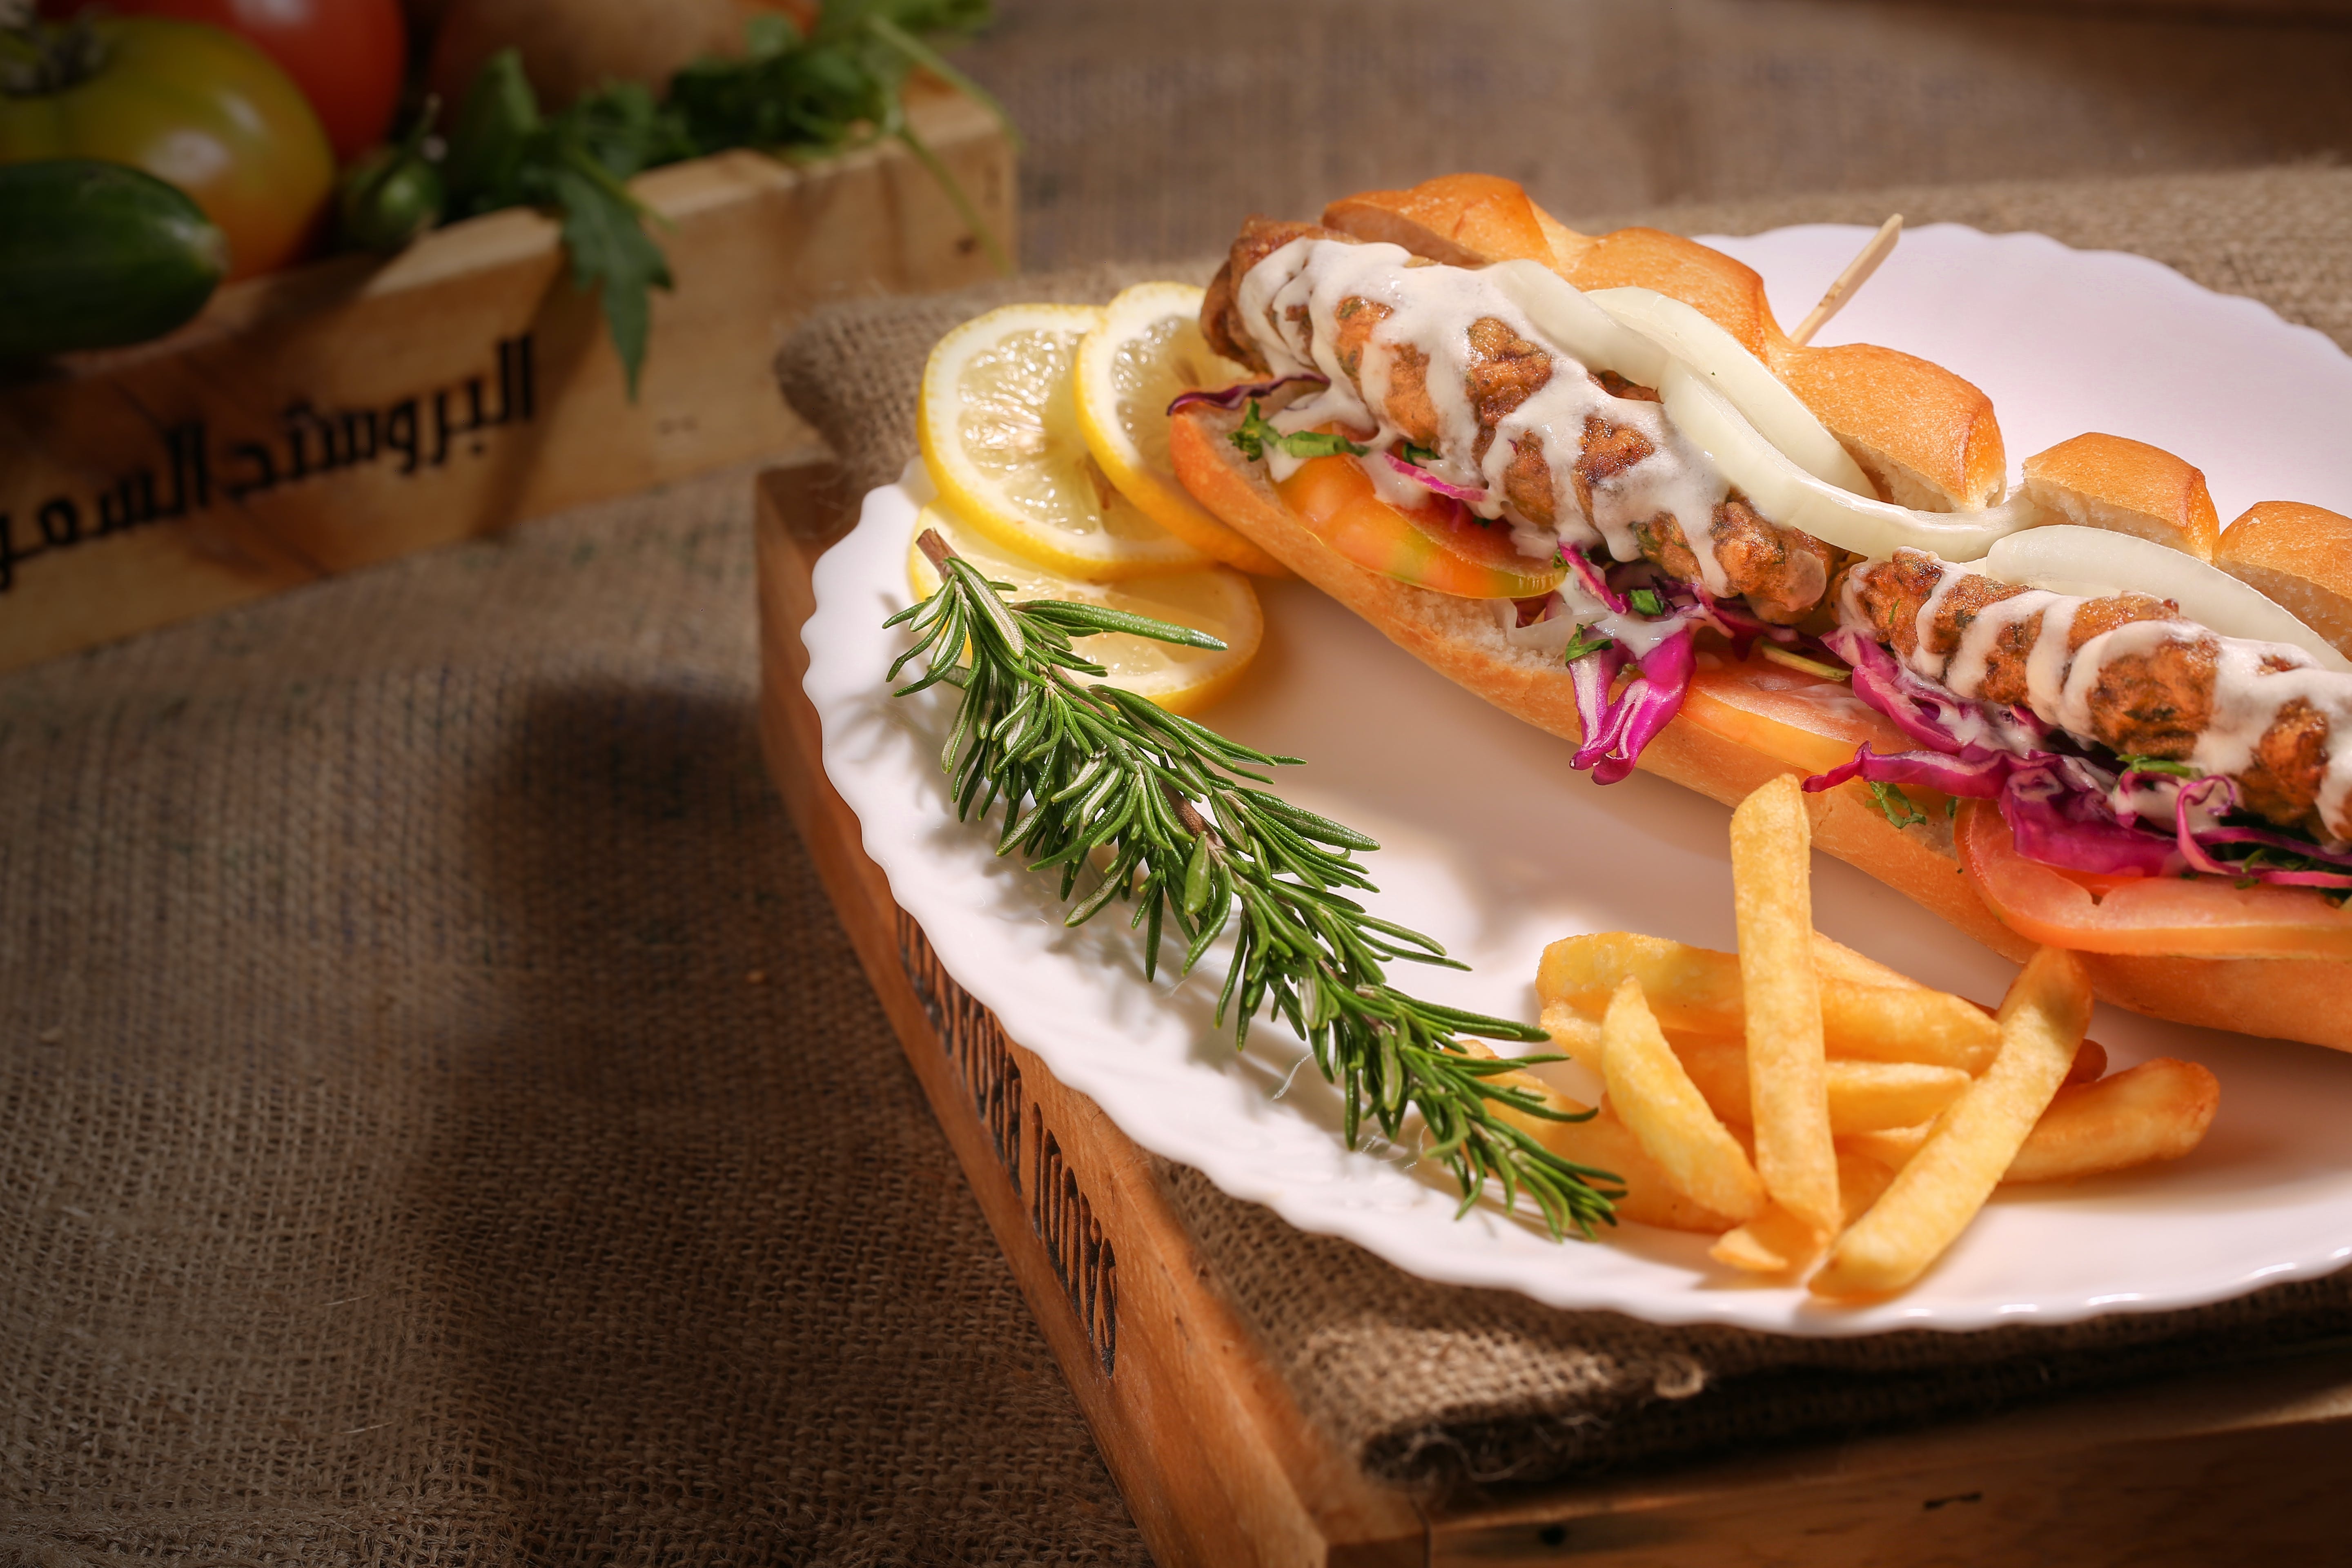 Bread, Fries, And Sliced Lemon Served On White Plate